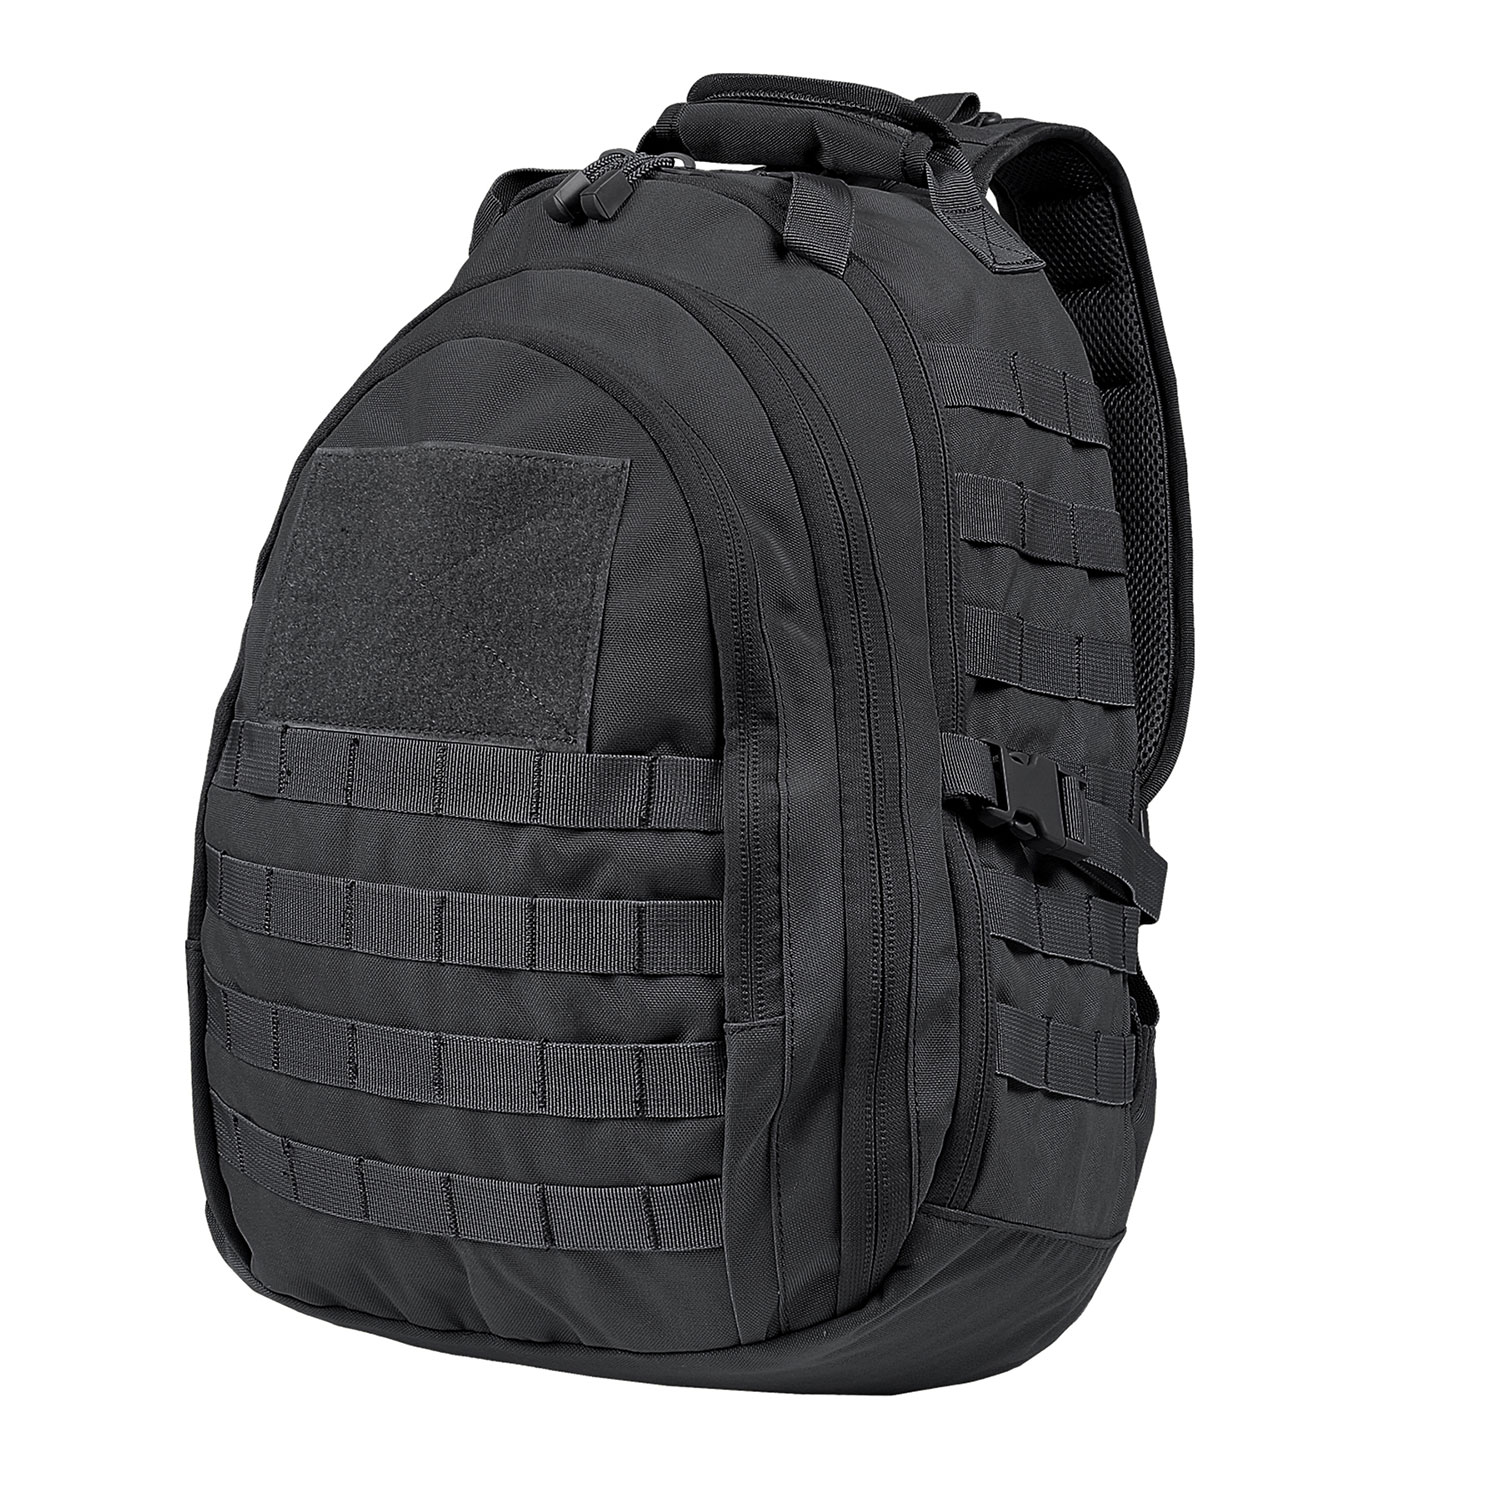 Condor Tactical Sling Bag